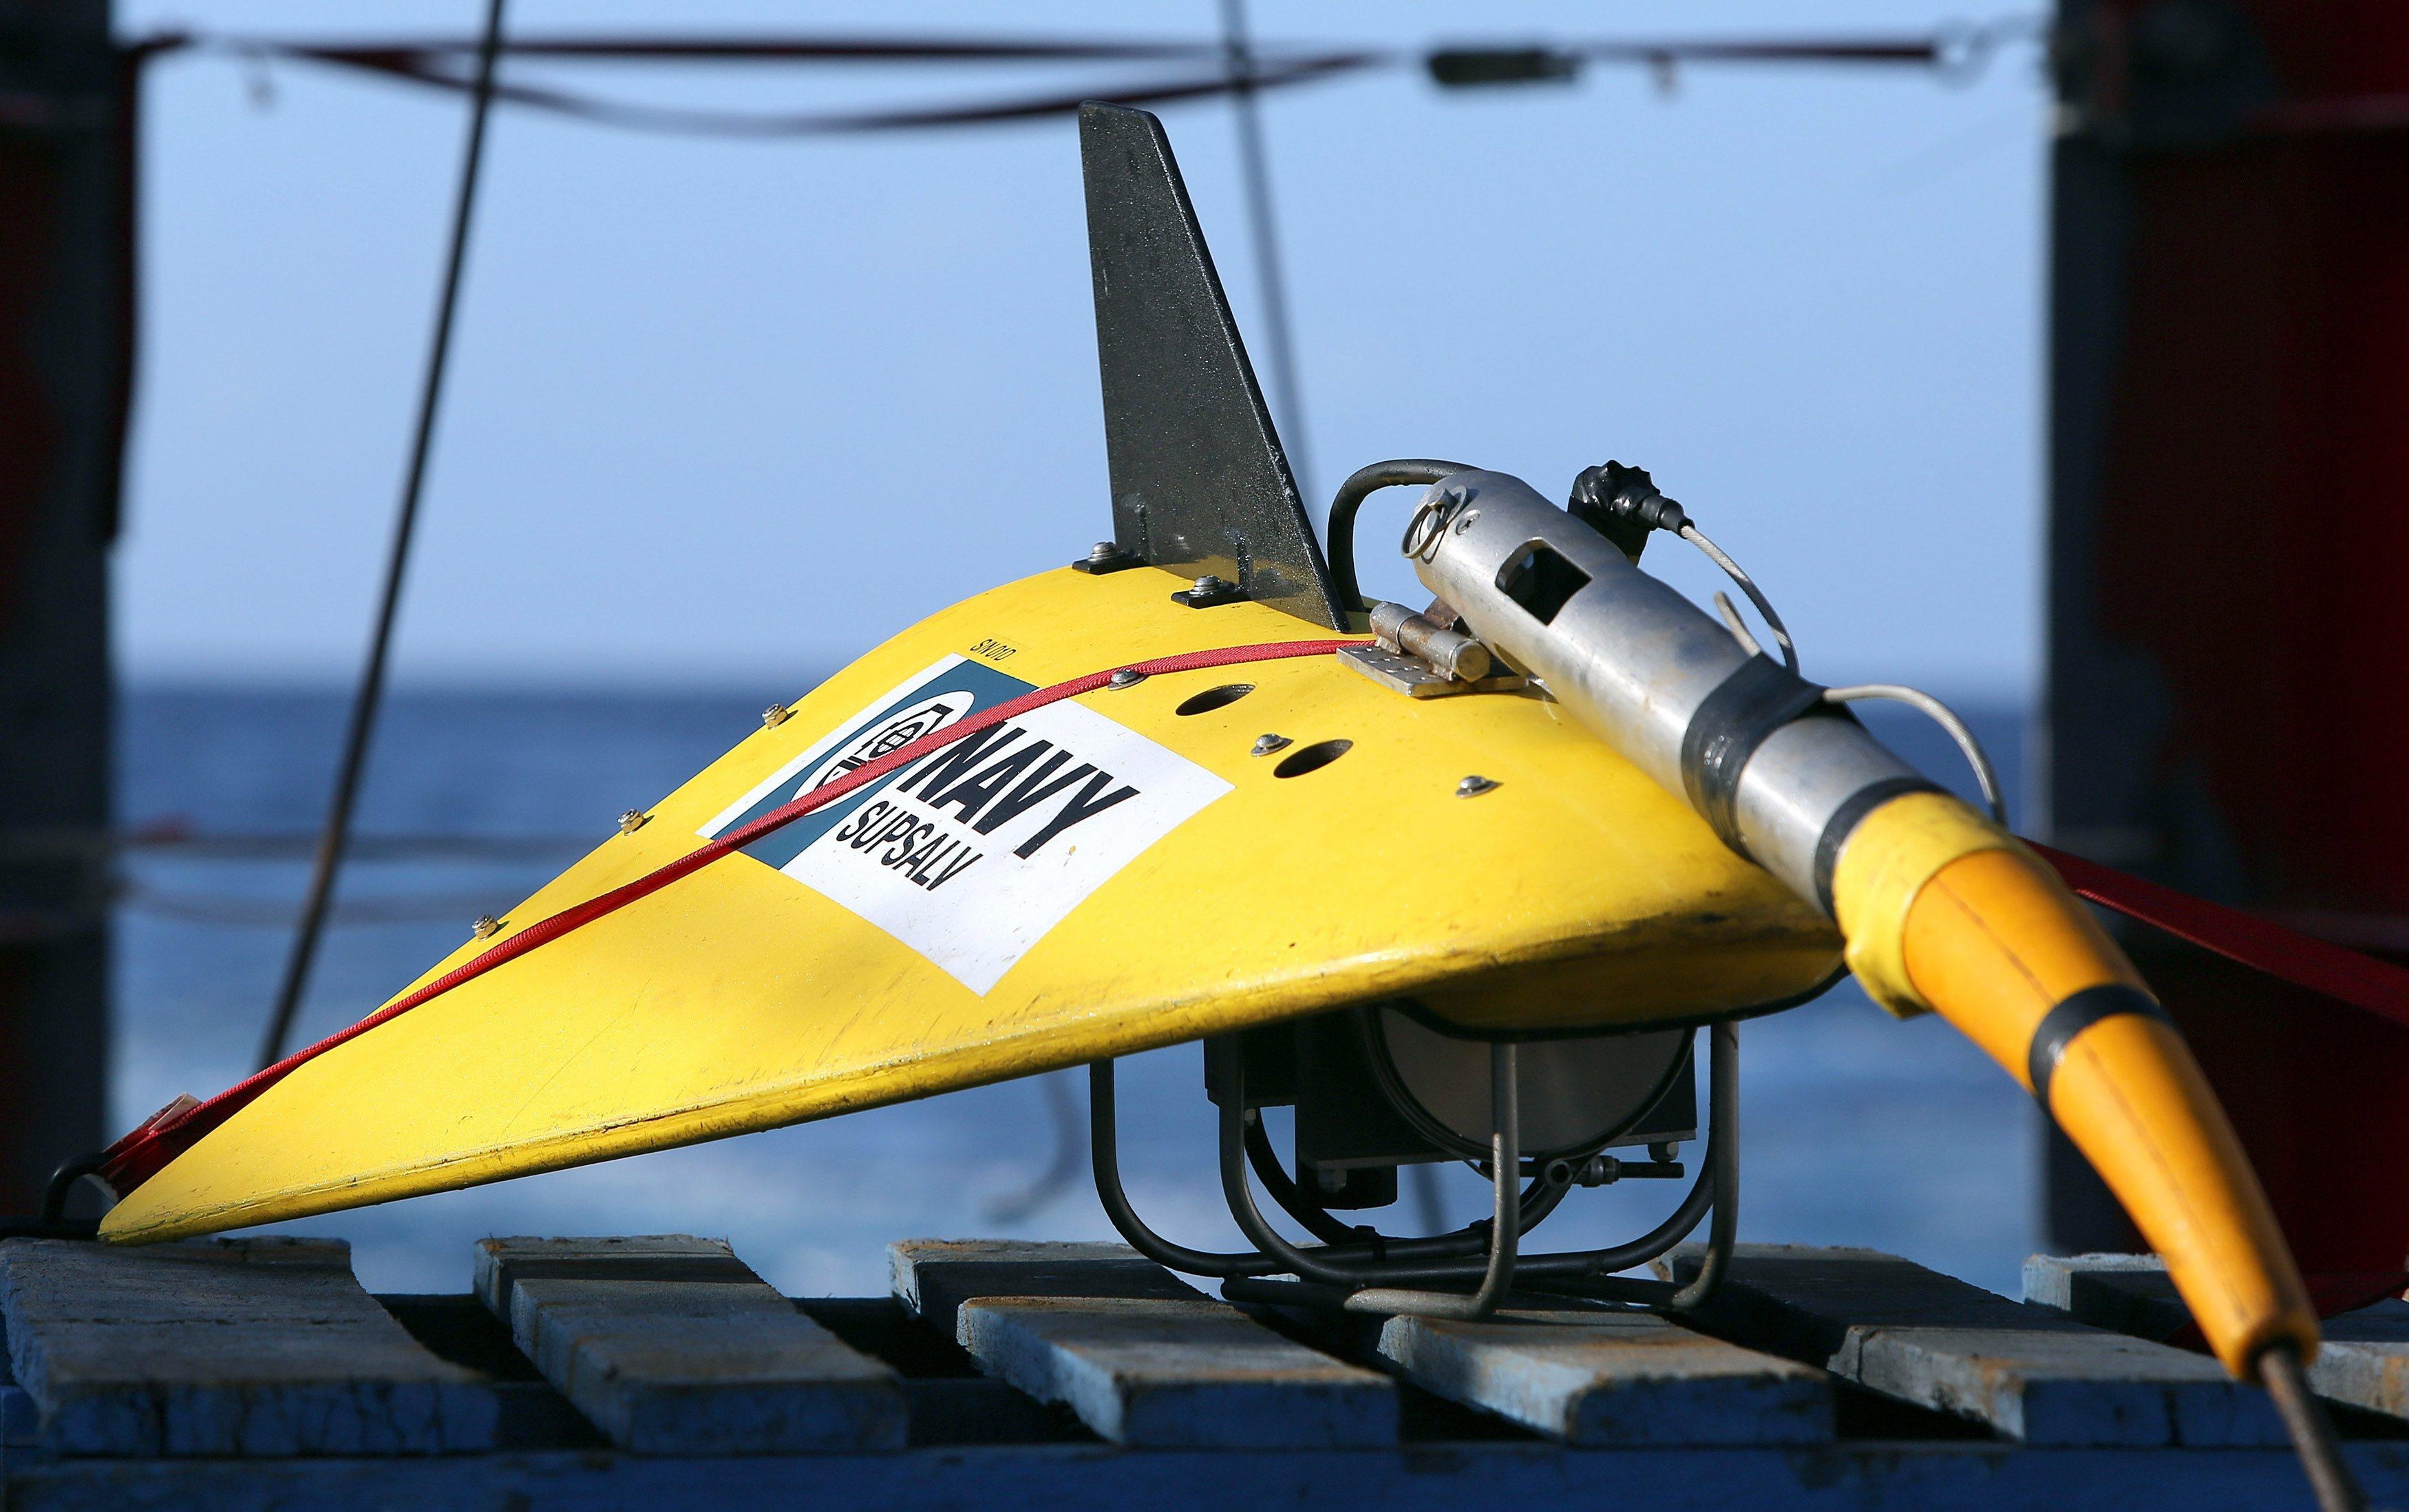 Flight MH370 Towed Pinger Locator